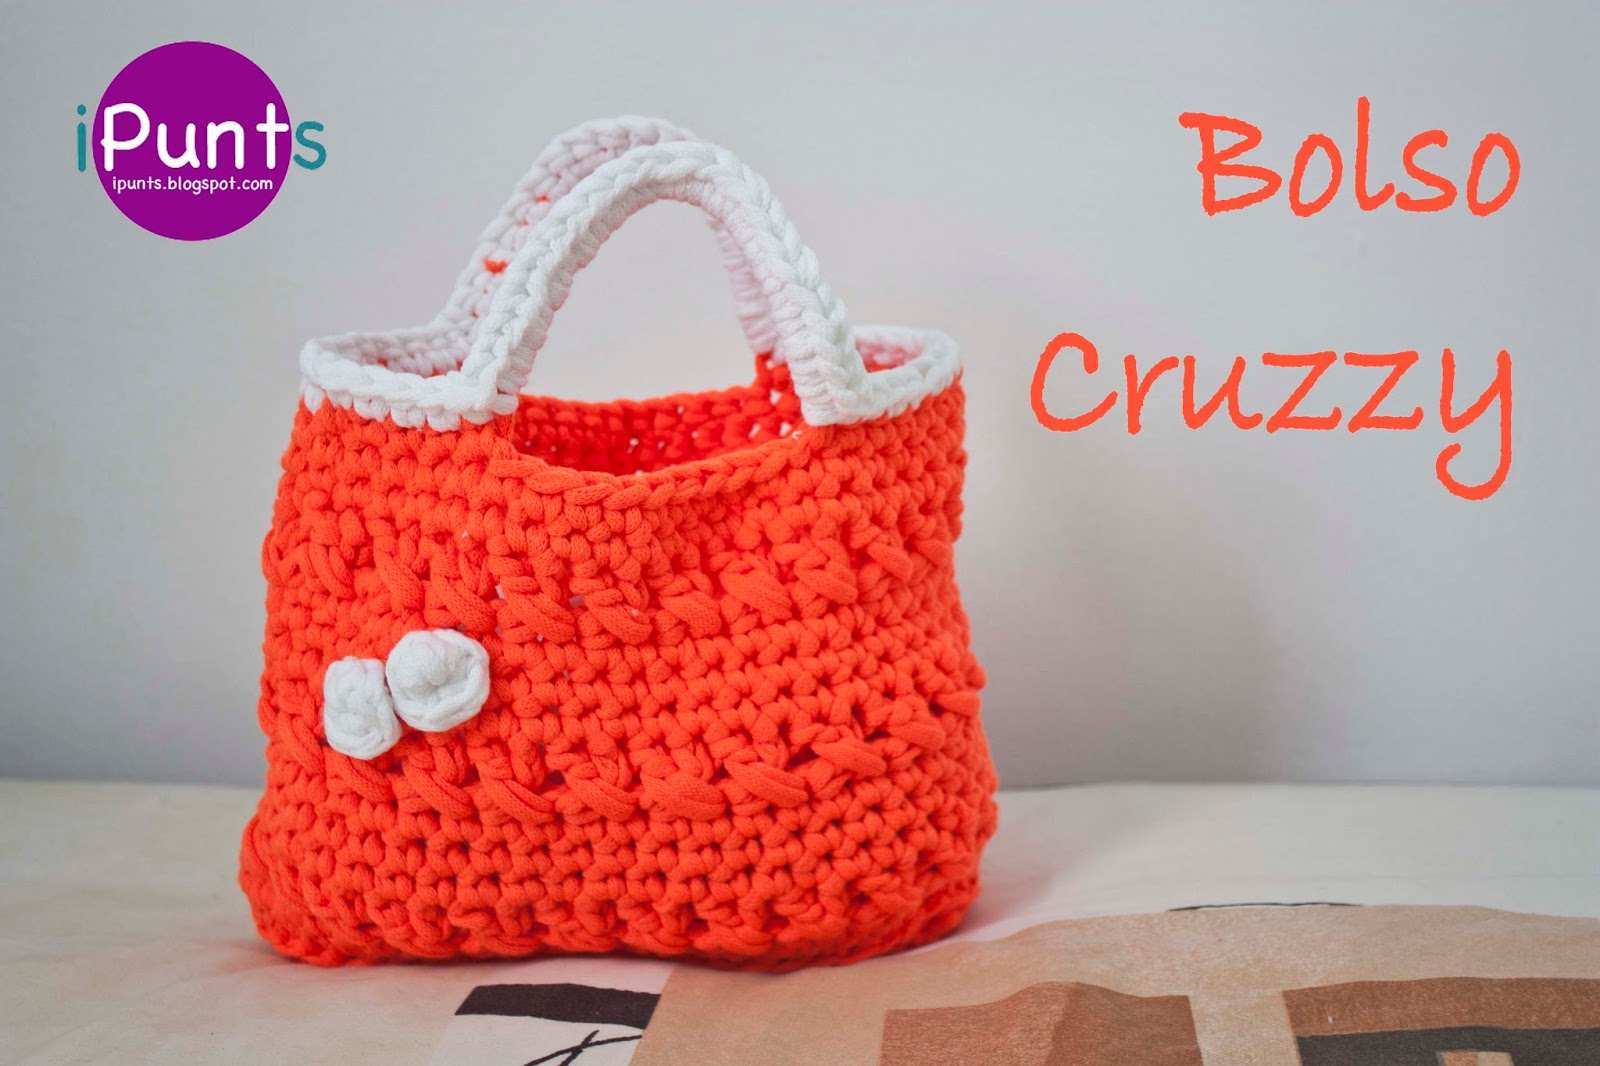 Ipunts bolso cruzzy a trapillo for Bolsos de crochet de trapillo